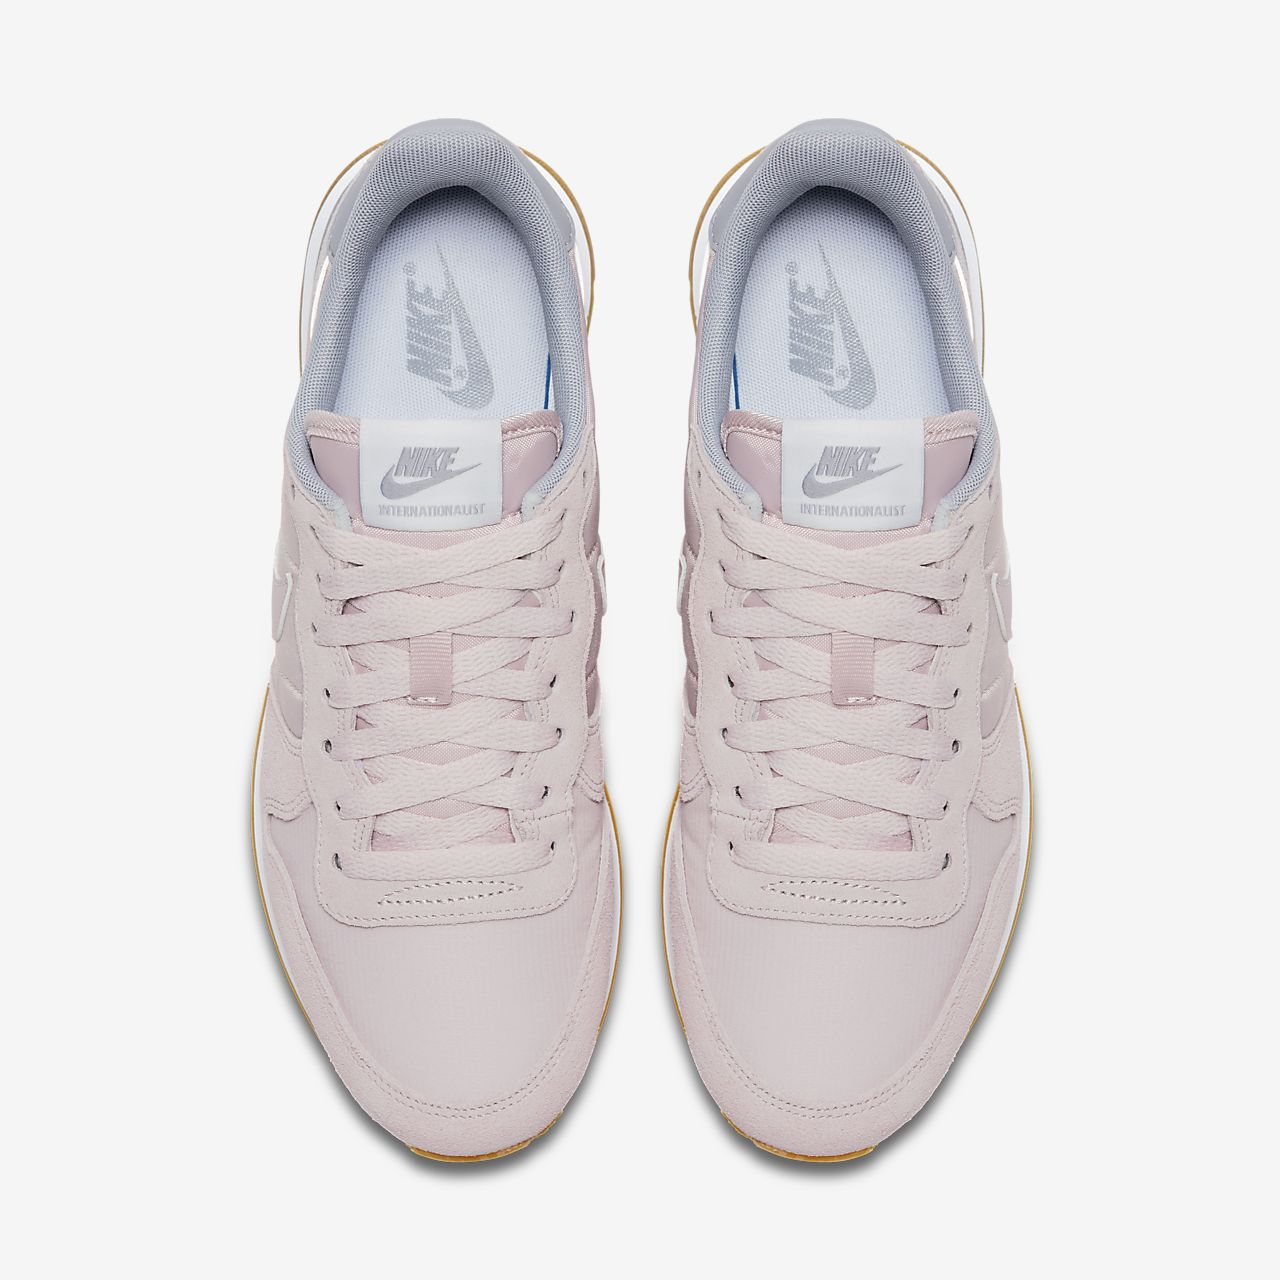 chaussure nike blanche pour femme